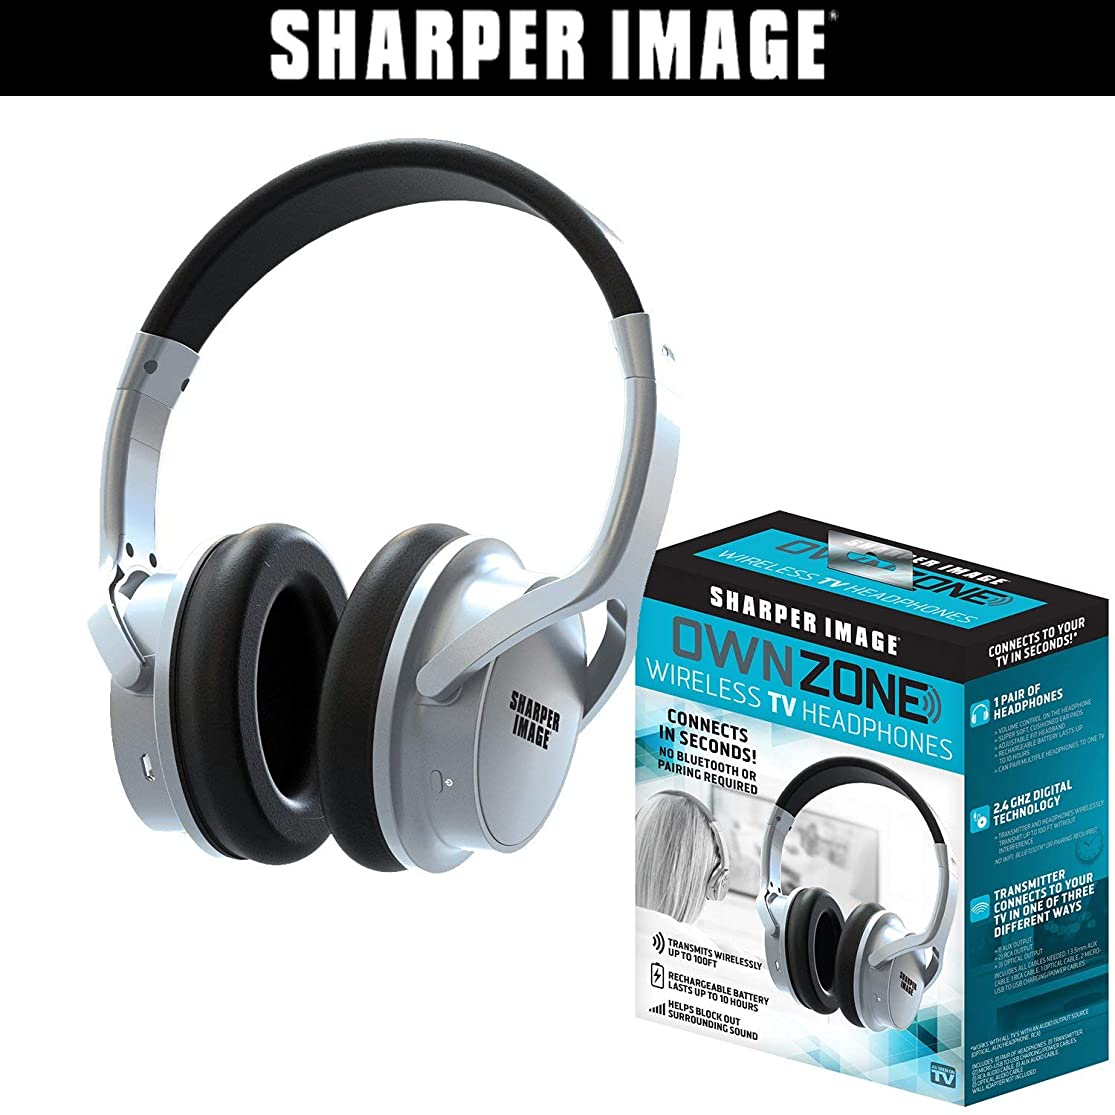 Sharper Image OWN ZONE Wireless Rechargeable TV Headphones- RF Connection, 2.4 GHz, Transmits Wirelessly up to 100ft, No Bluetooth Required, AUX, RCA, & Optical Cable Included (Silver) (Renewed) nynbirly6